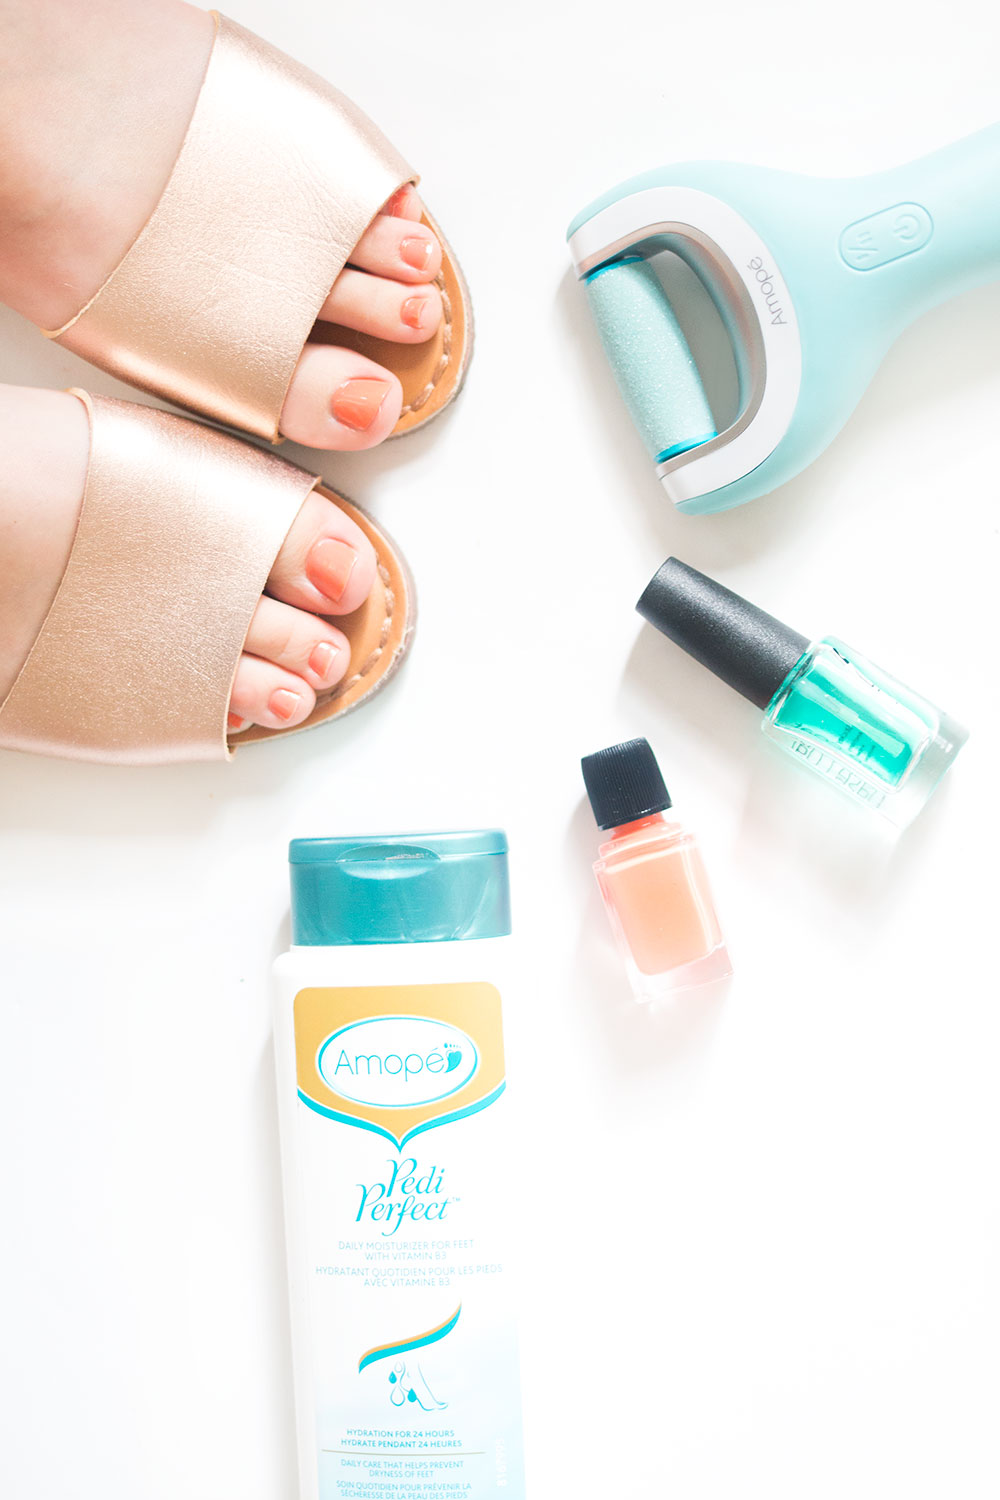 DIY Pedicure Amope Wet Dry Electronic Foot File // Hello Rigby Seattle Beauty Blog